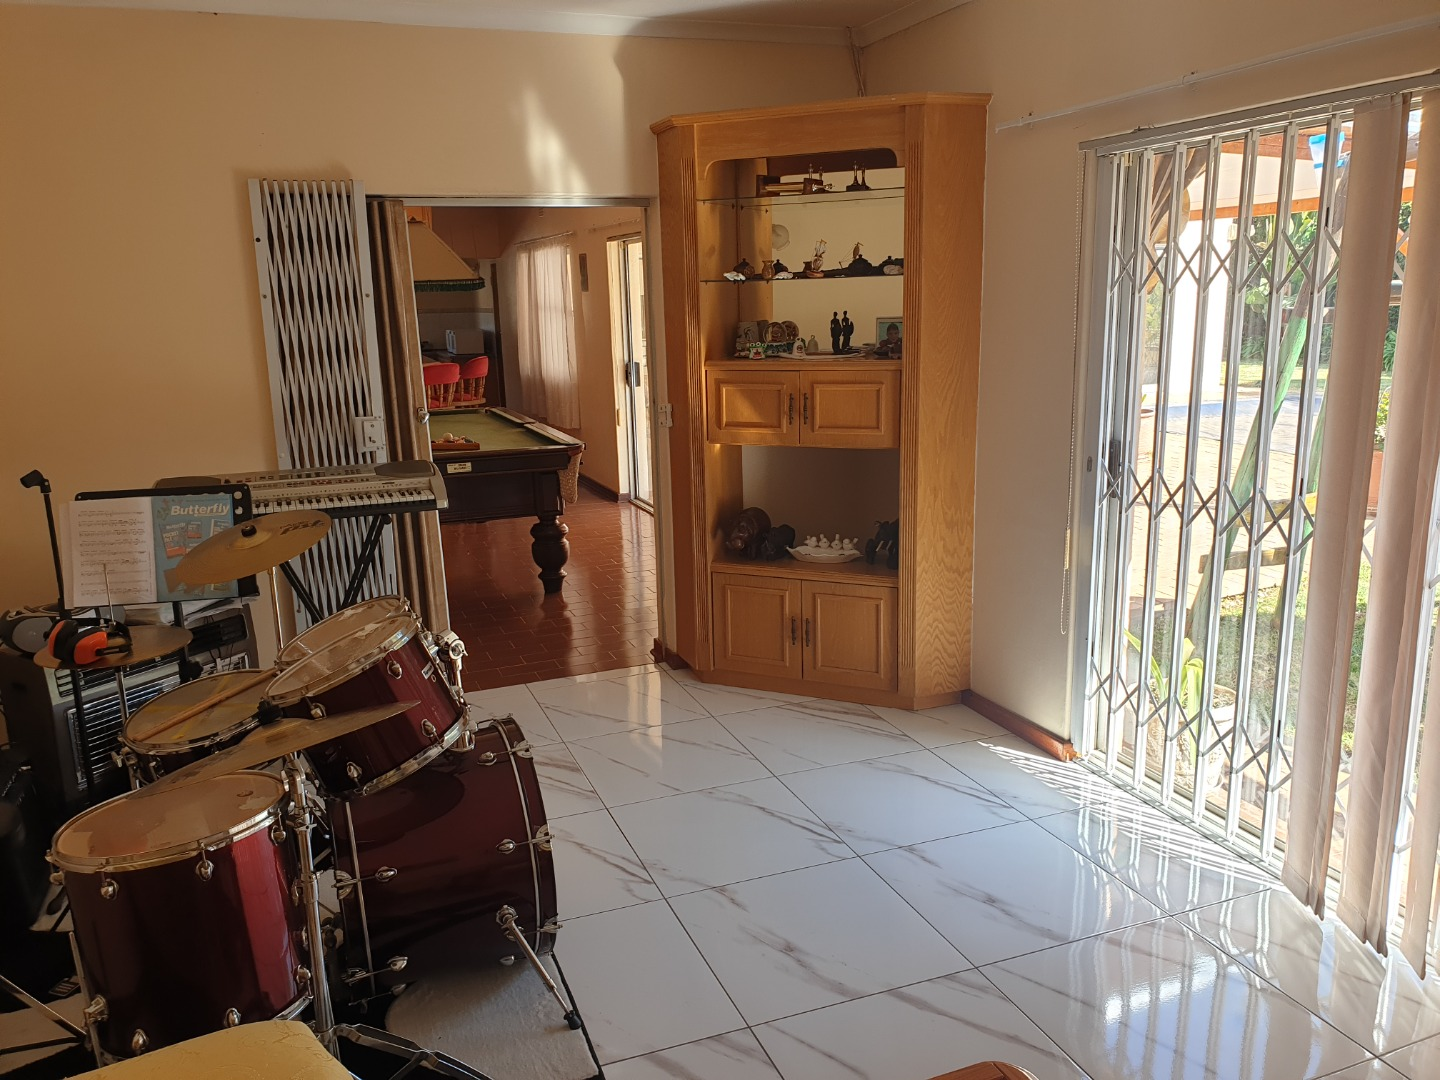 4 Bedroom House For Sale in Selcourt